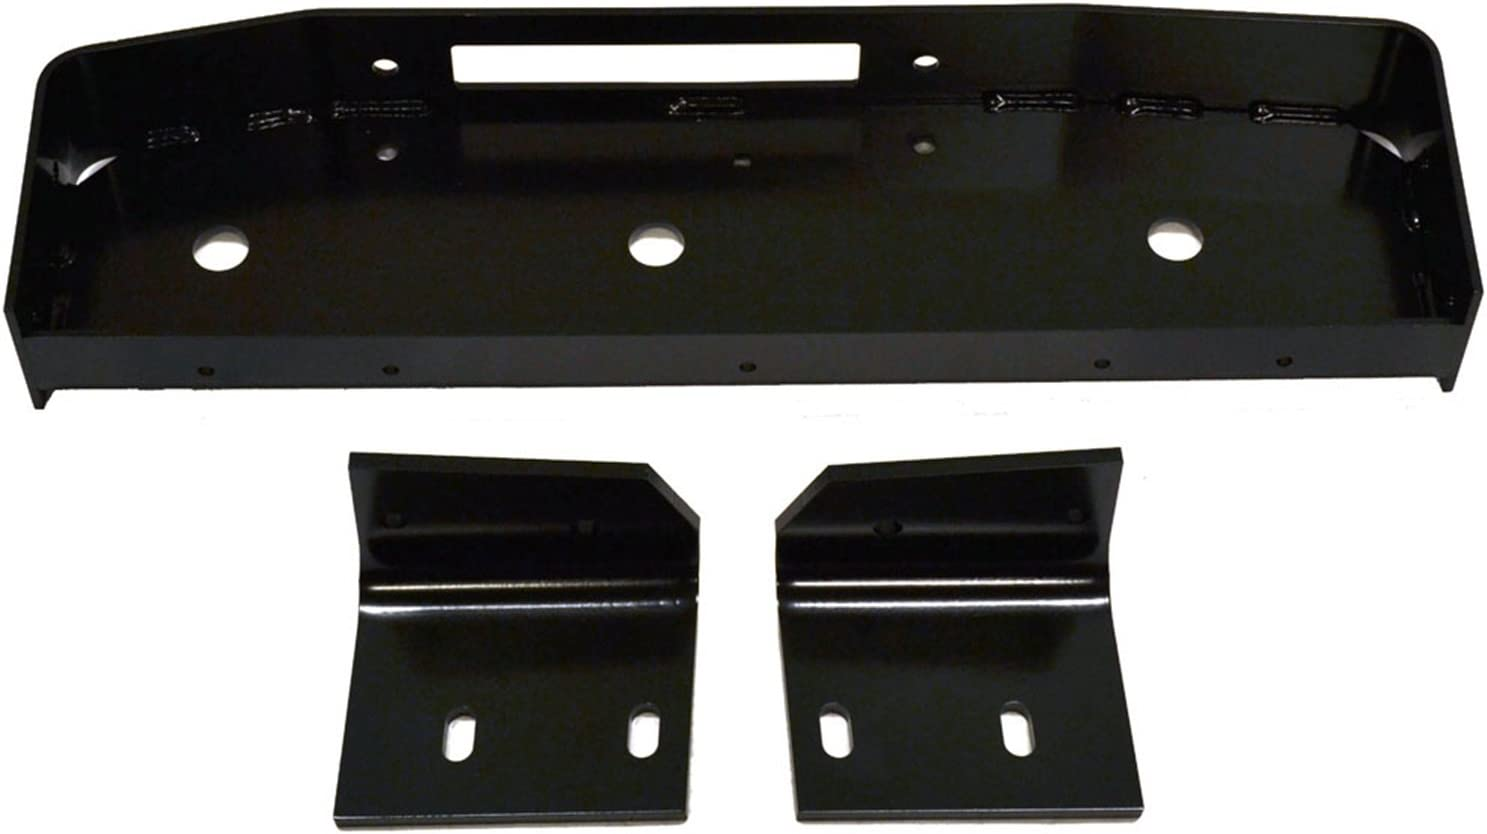 WARN 78319 Skirting Kit for Hidden Winch Mount